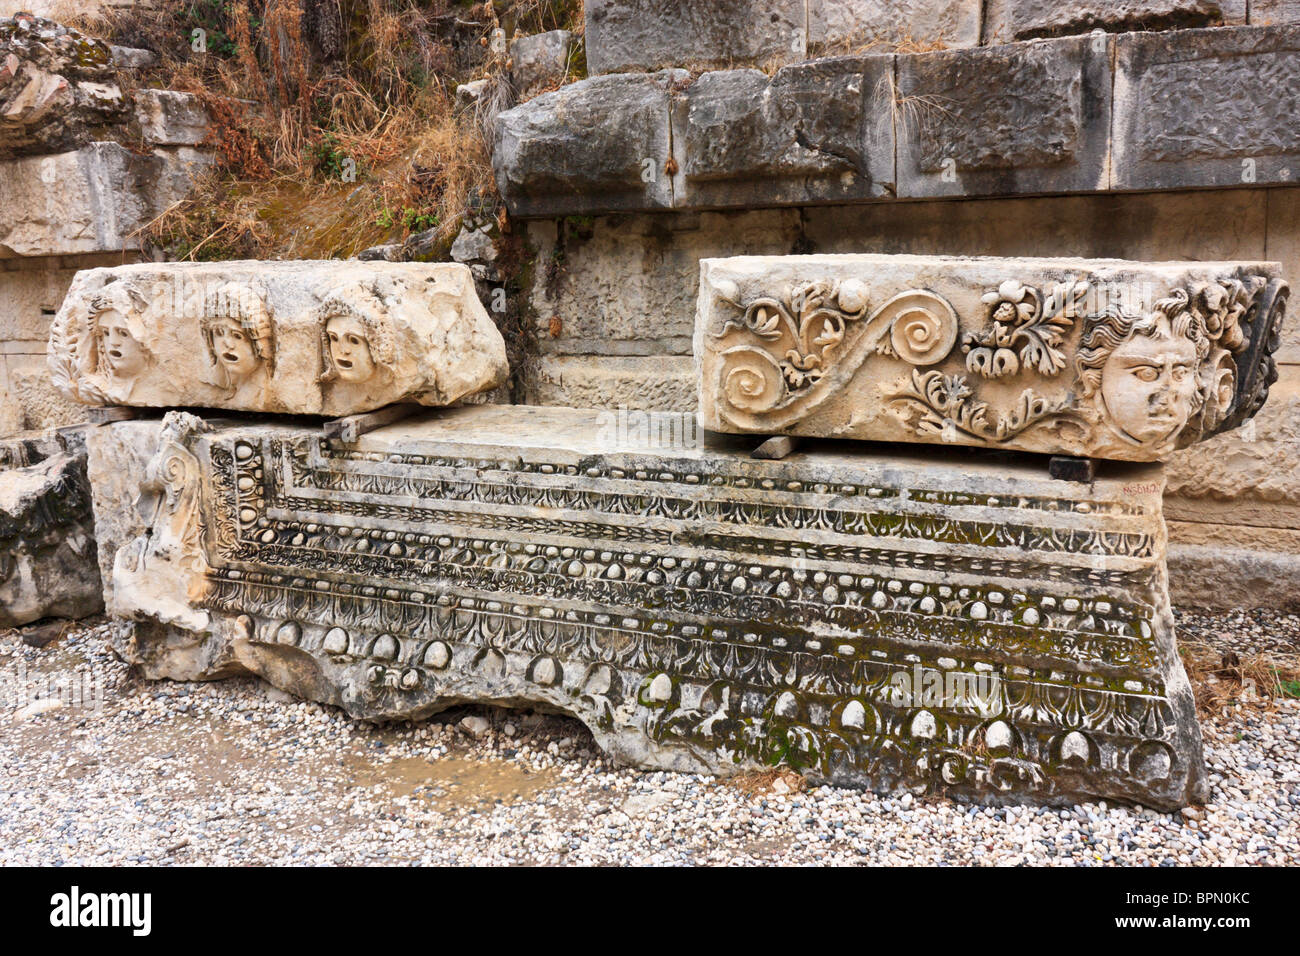 Stone carvings in the ruins of amphitheater myra